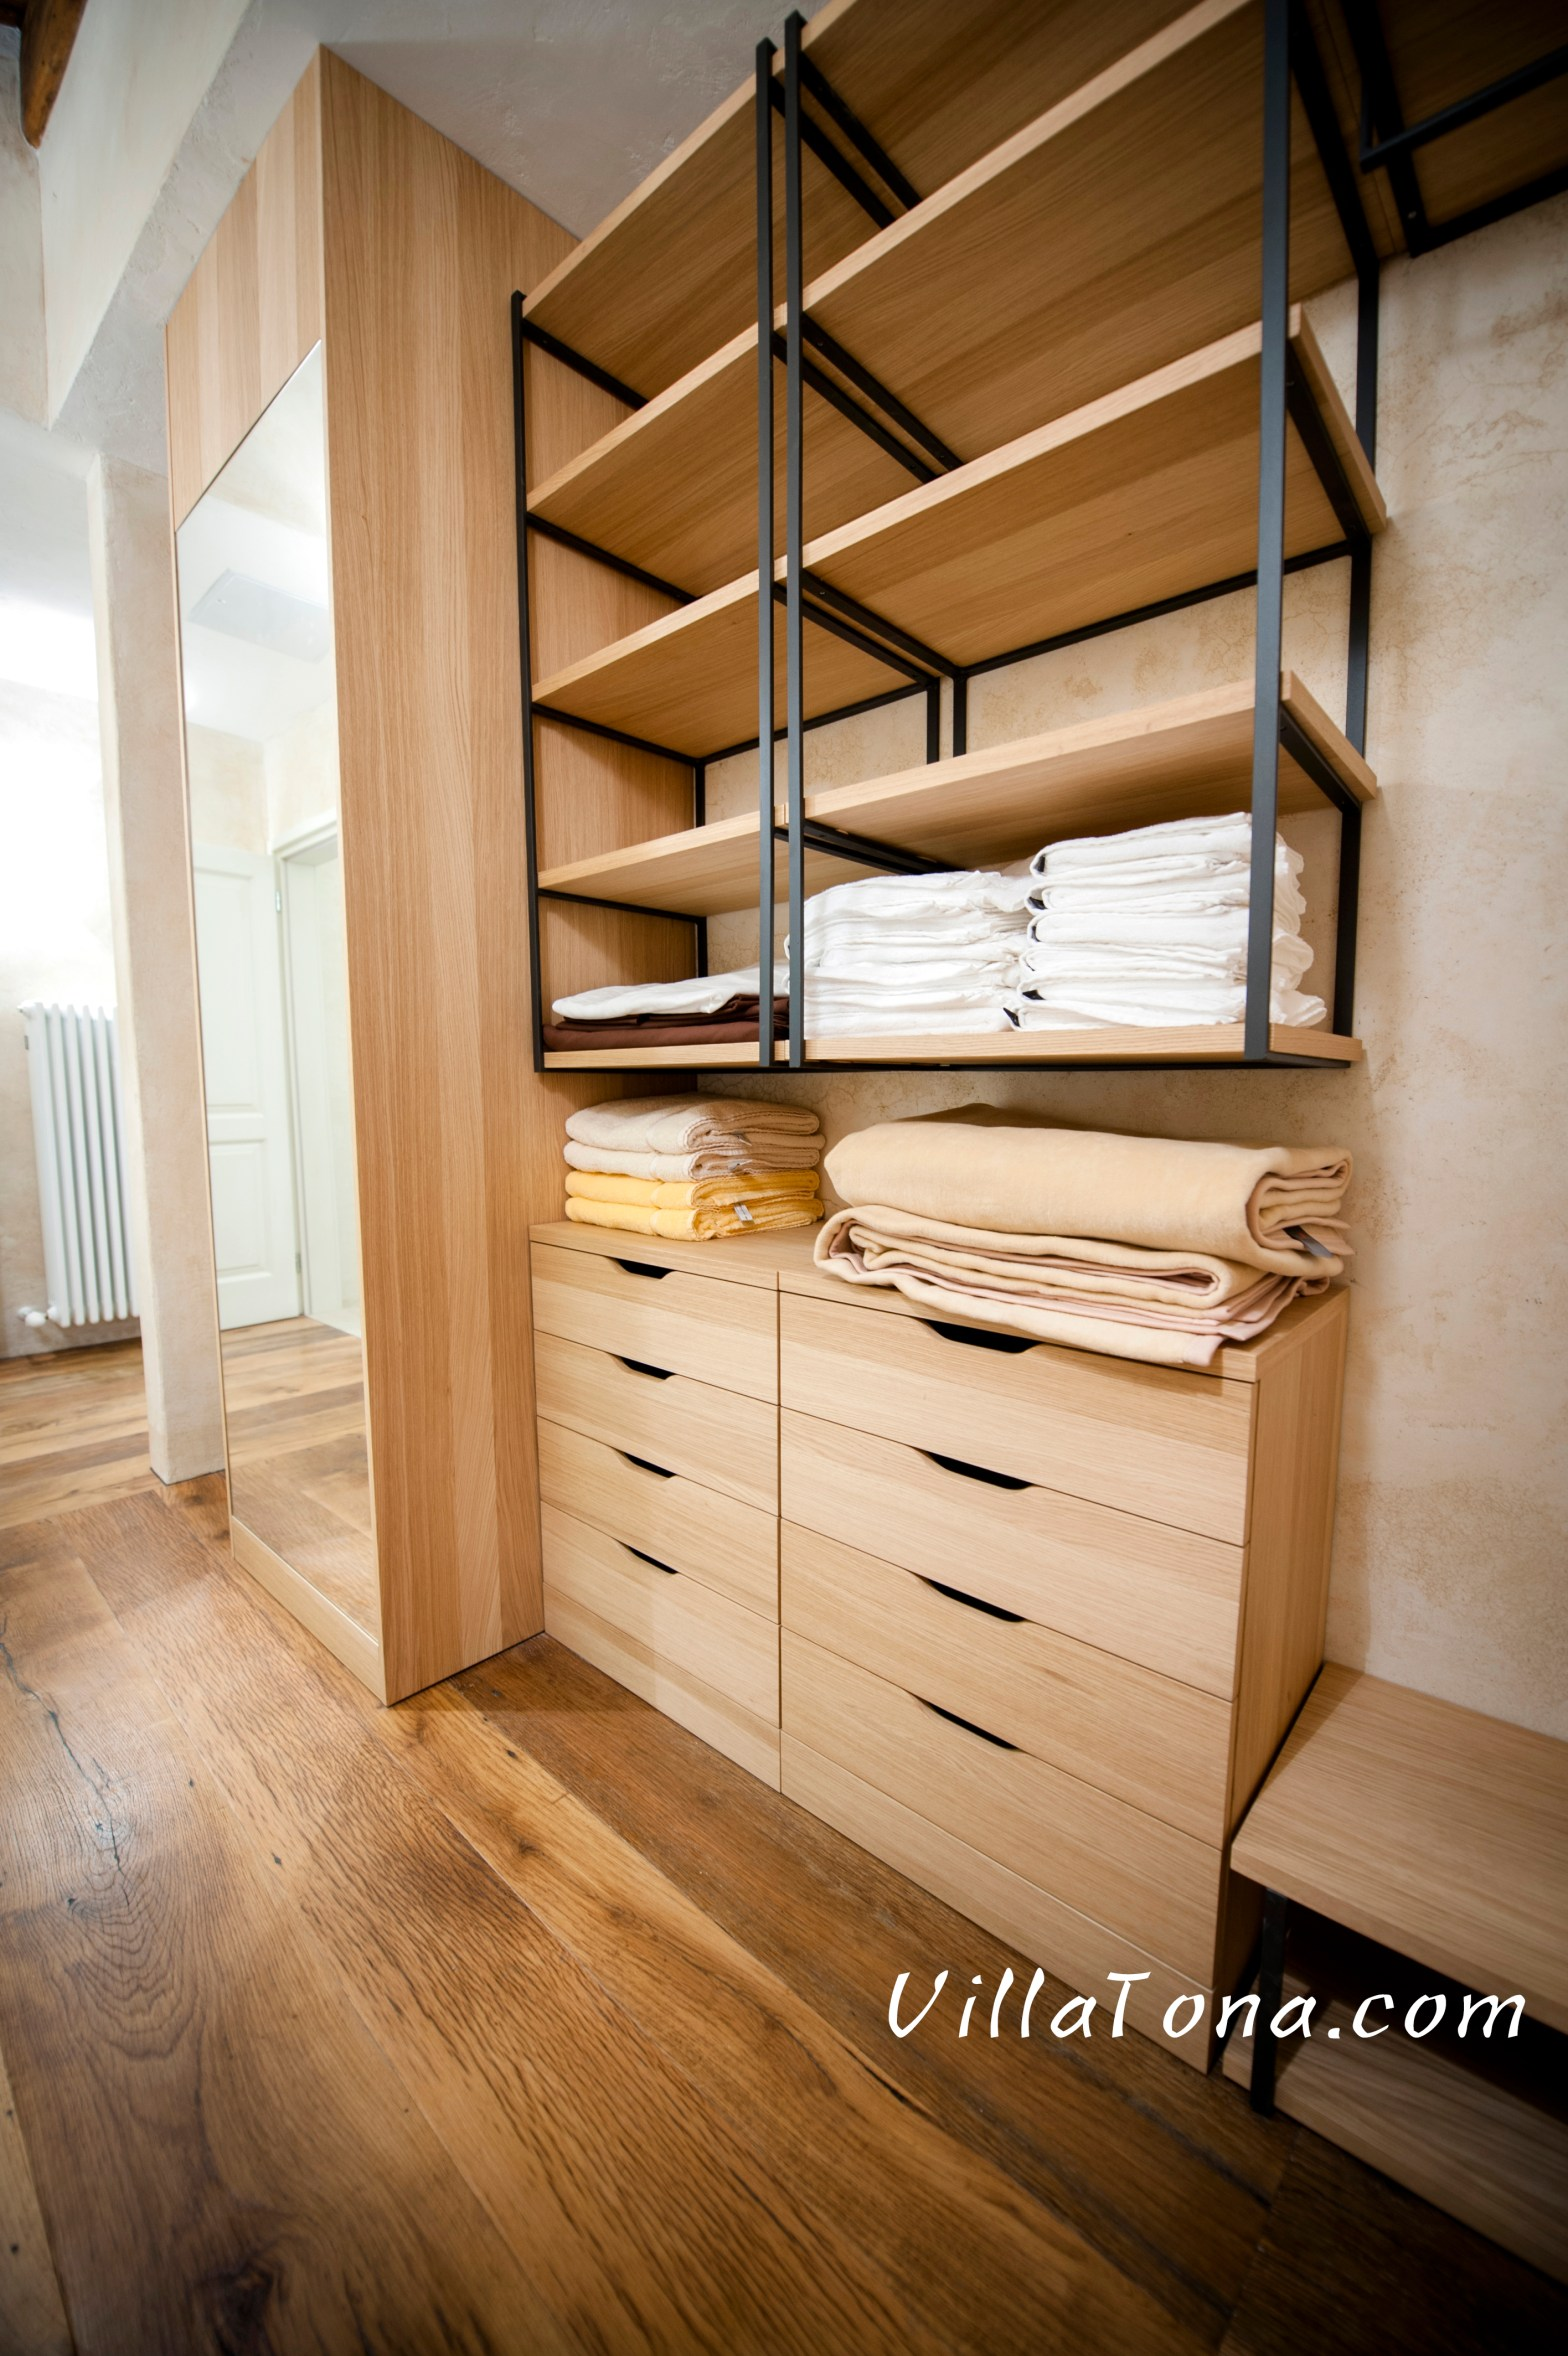 The Master Bedroom Cabinet